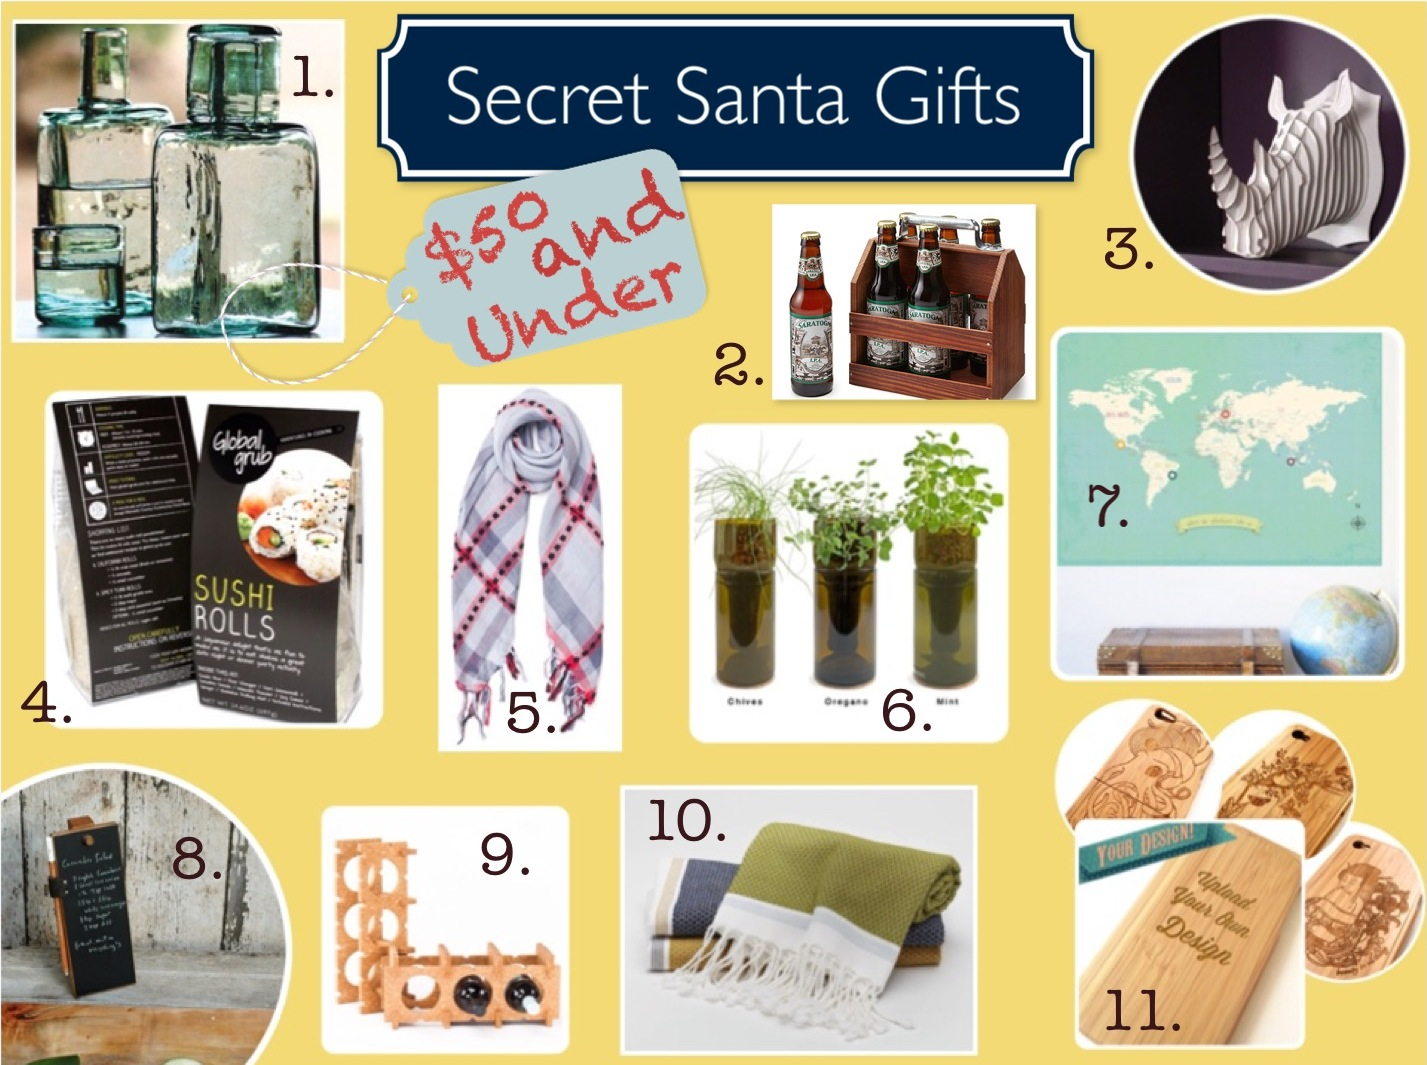 Ethical Secret Santa Gifts Under $50 - Made-To-Travel.com